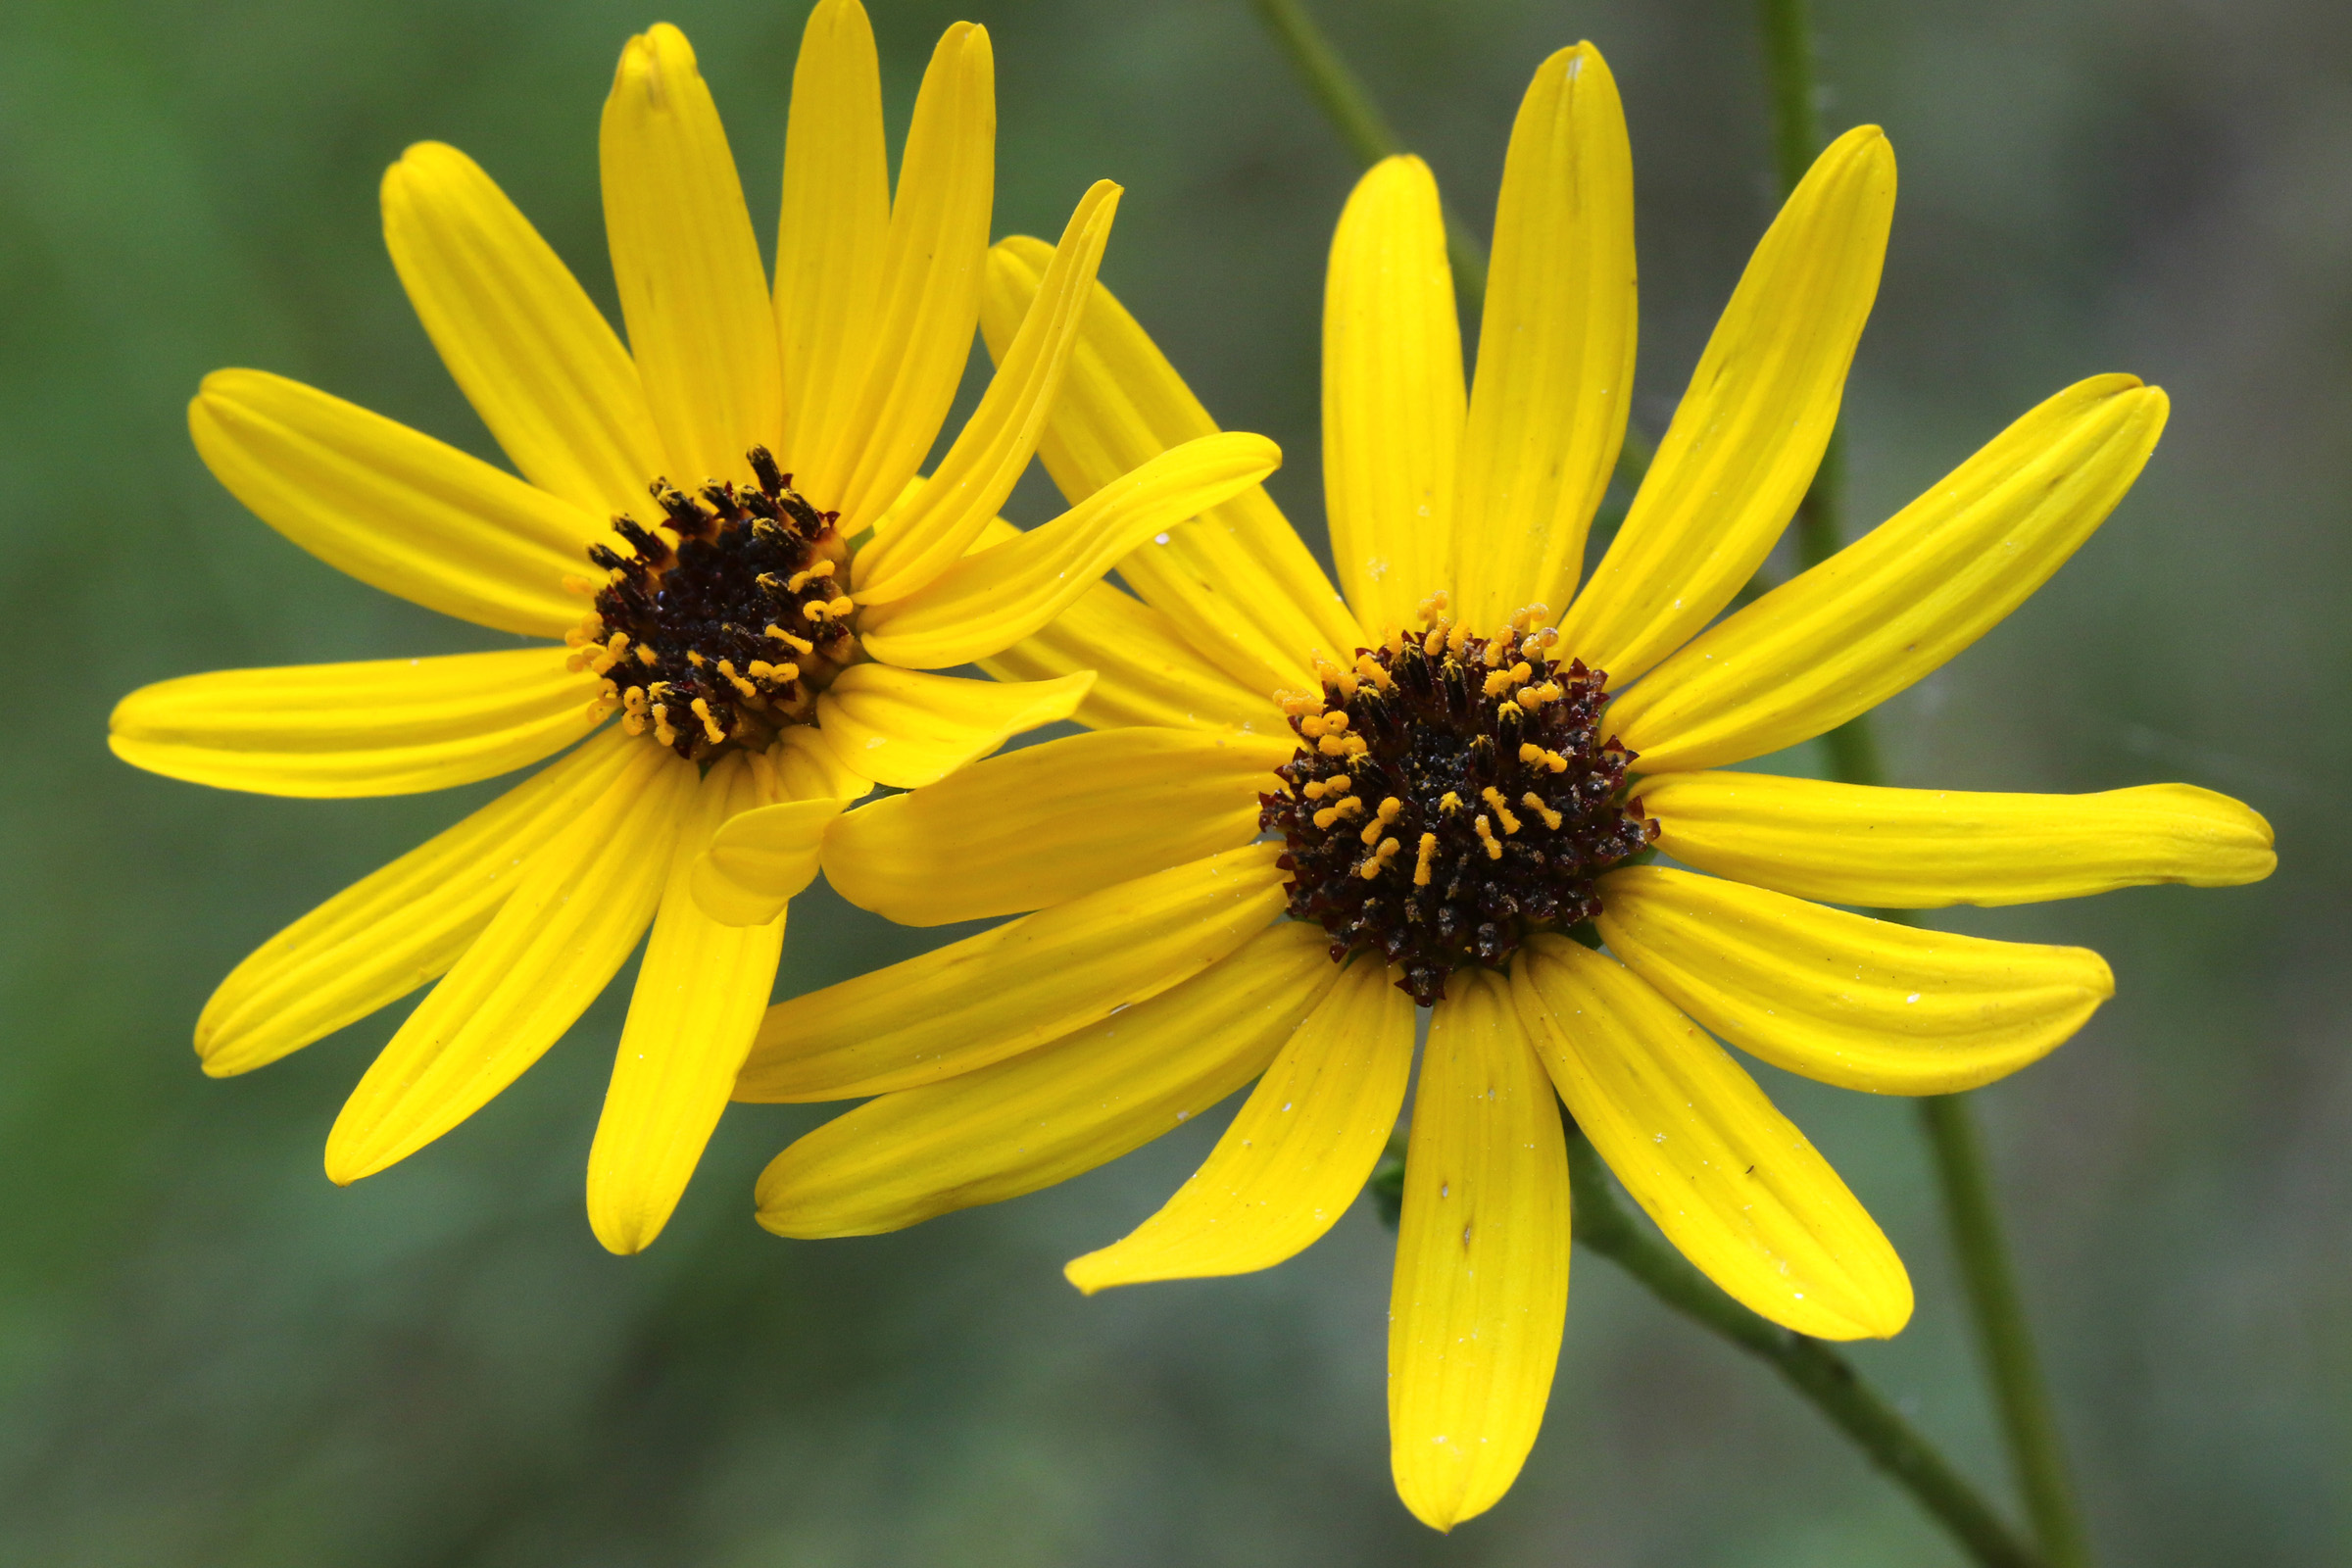 The Scientific Name is Helianthus atrorubens. You will likely hear them called Purpledisk Sunflower, Appalachian Sunflower. This picture shows the Flower heads to 3 inches wide with 10-15 ray florets surrounding purple-brown disc florets with protruding bright yellow pistils. of Helianthus atrorubens